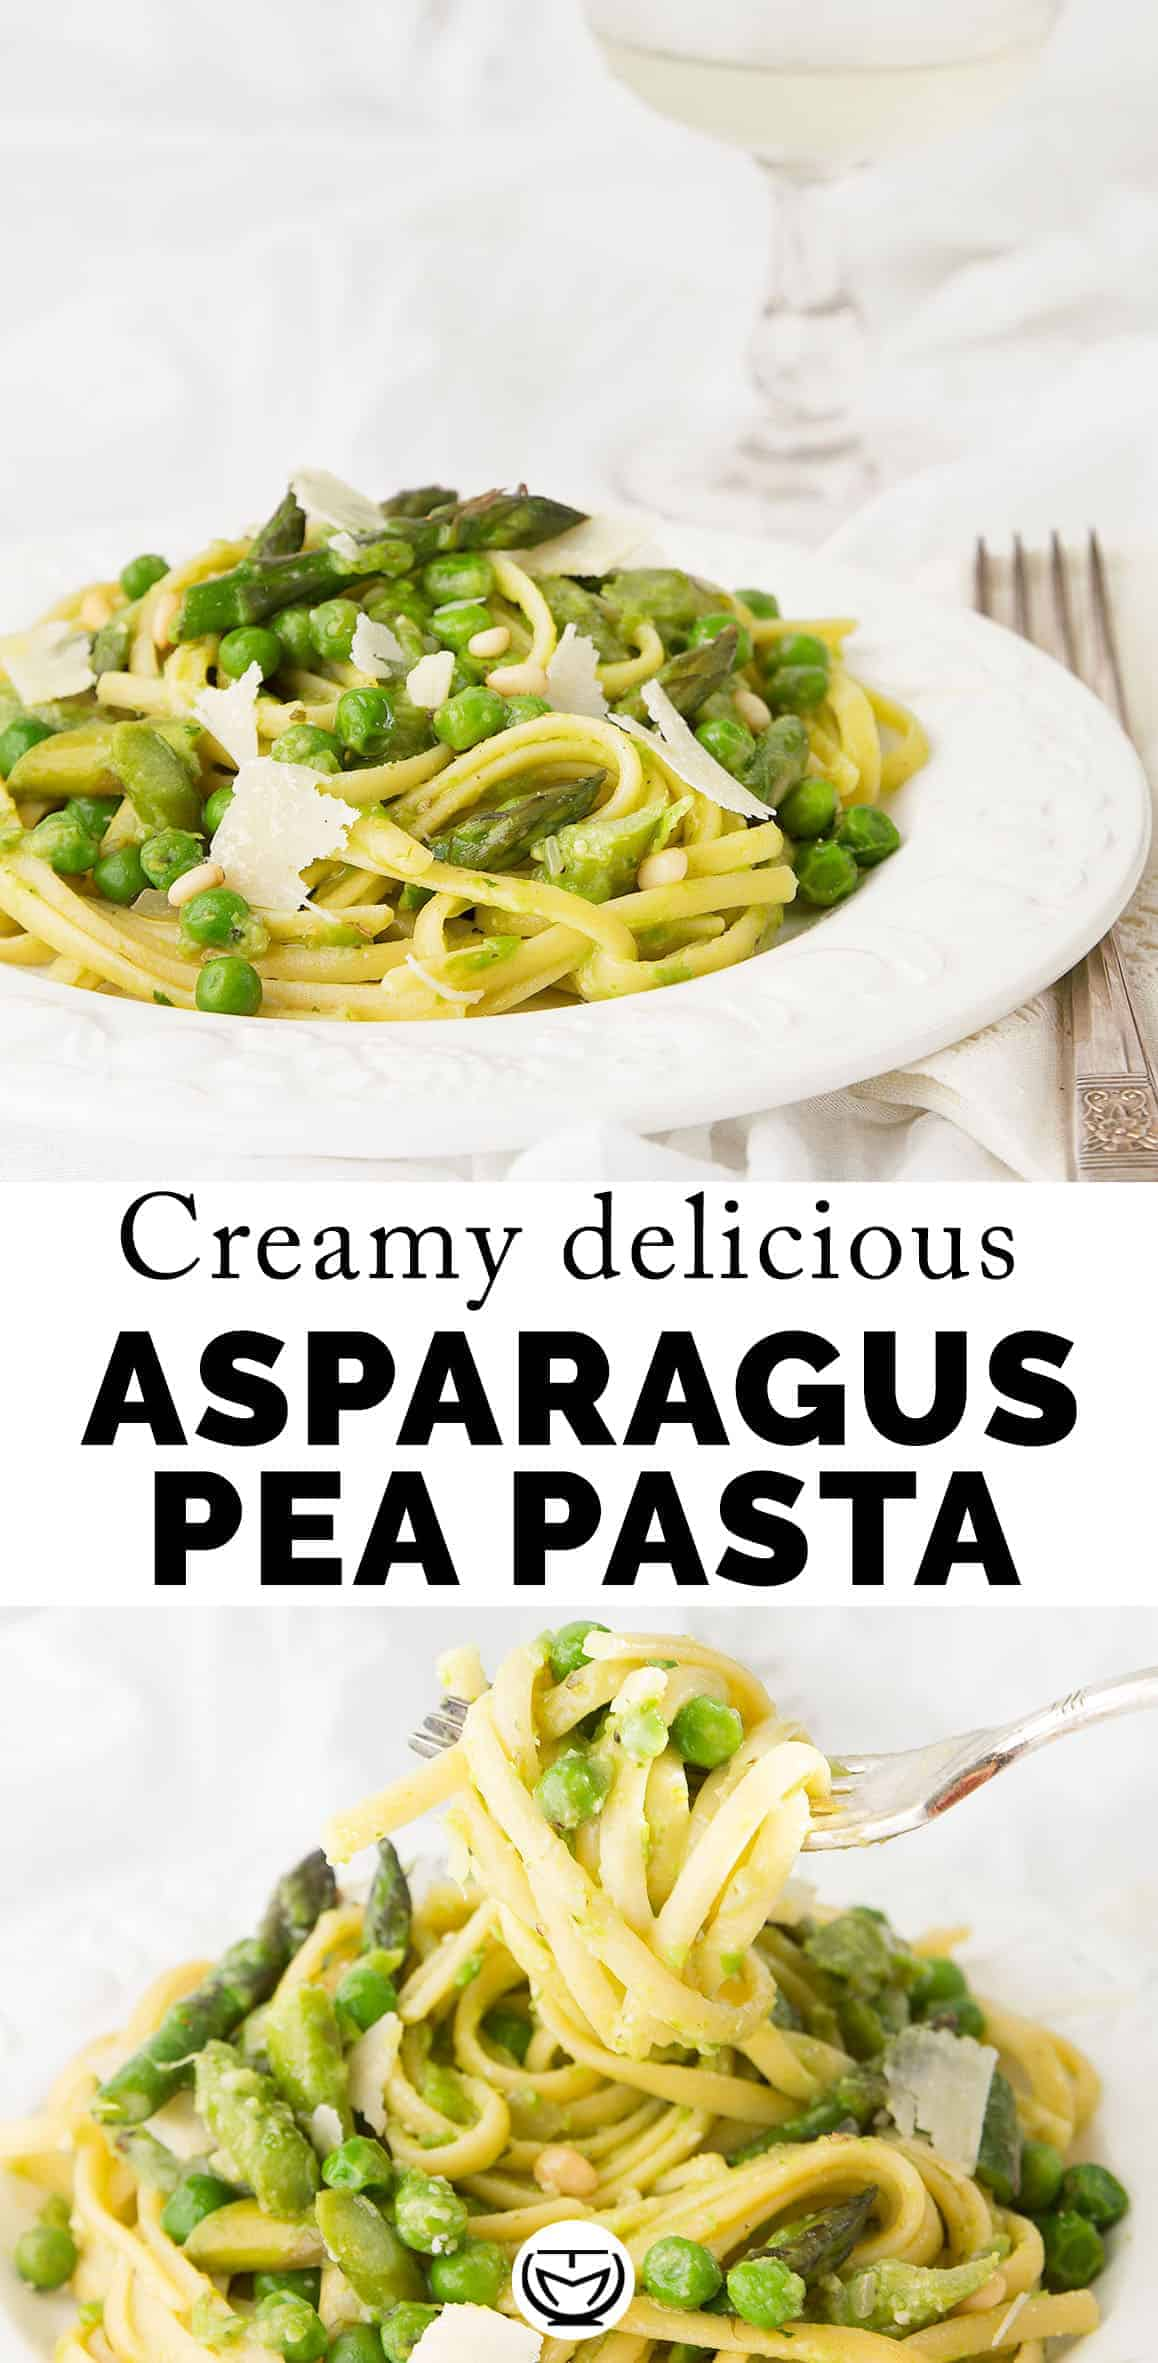 No butter, no cream or other unnecessary fat in this recipe, the starchy peas and the asparagus make all the trick. This is an easy, elegant and succulent pea and asparagus pasta ready in no time, ideal for last minute spring gathering! #asparagusrecipes #pastarecipes #easydinnerrecipes #peapasta #easter